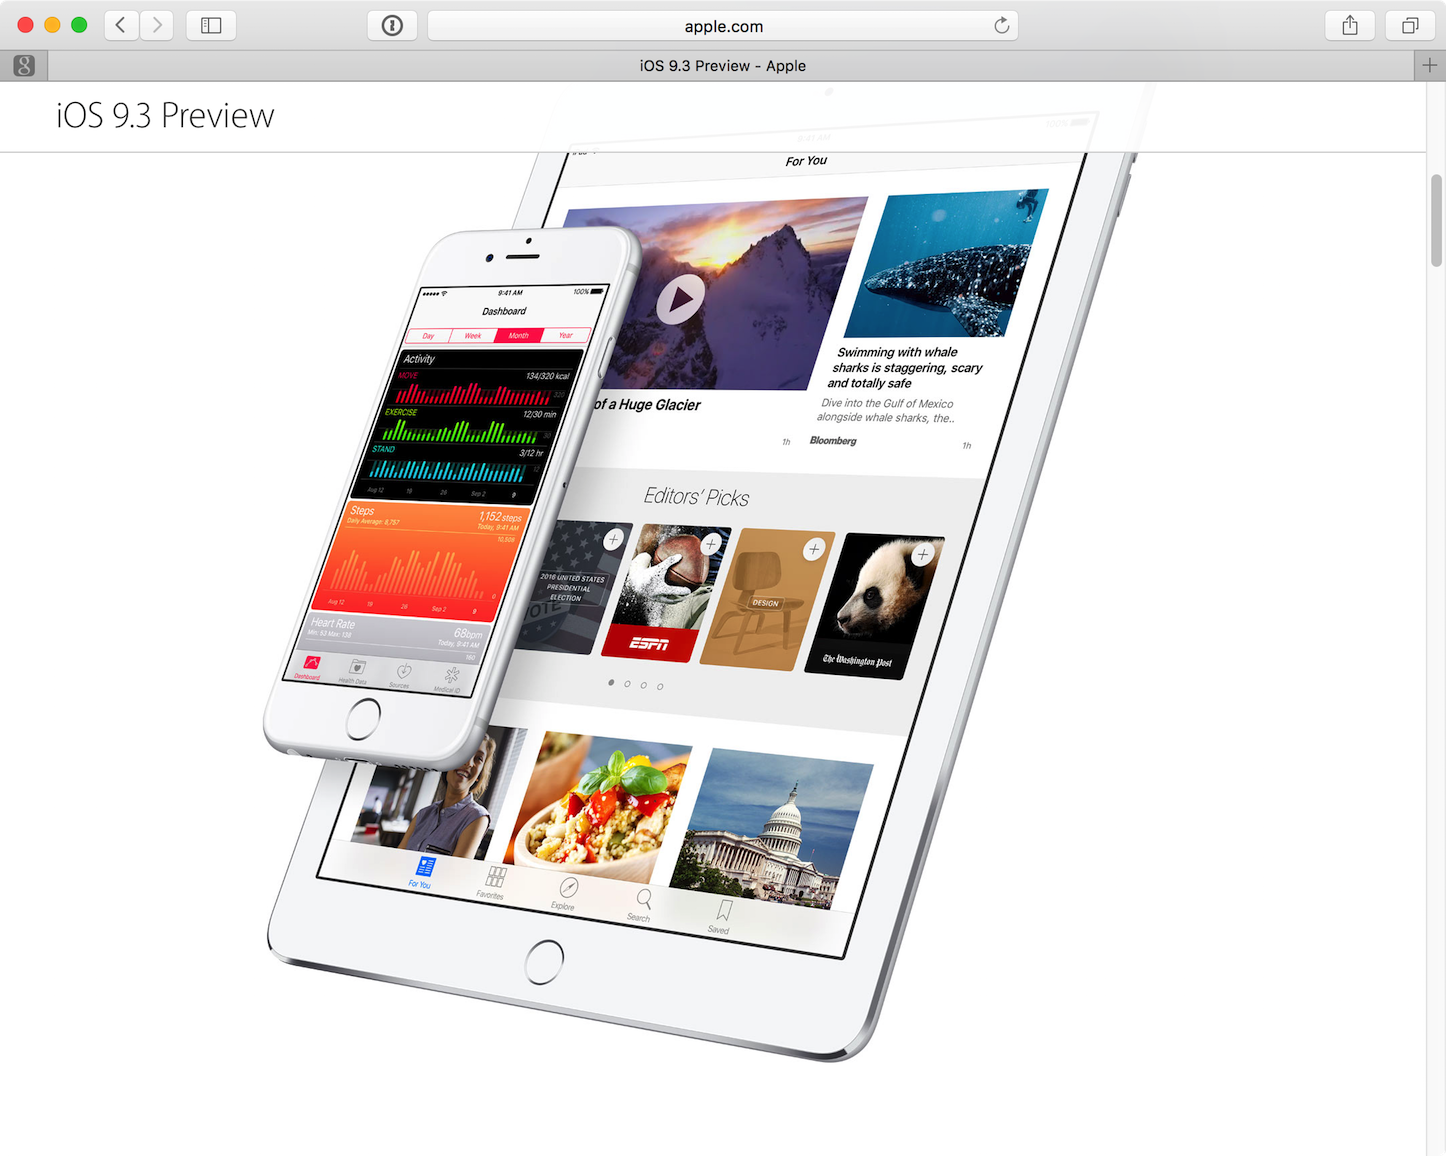 iOS 9.3 Preview Page US